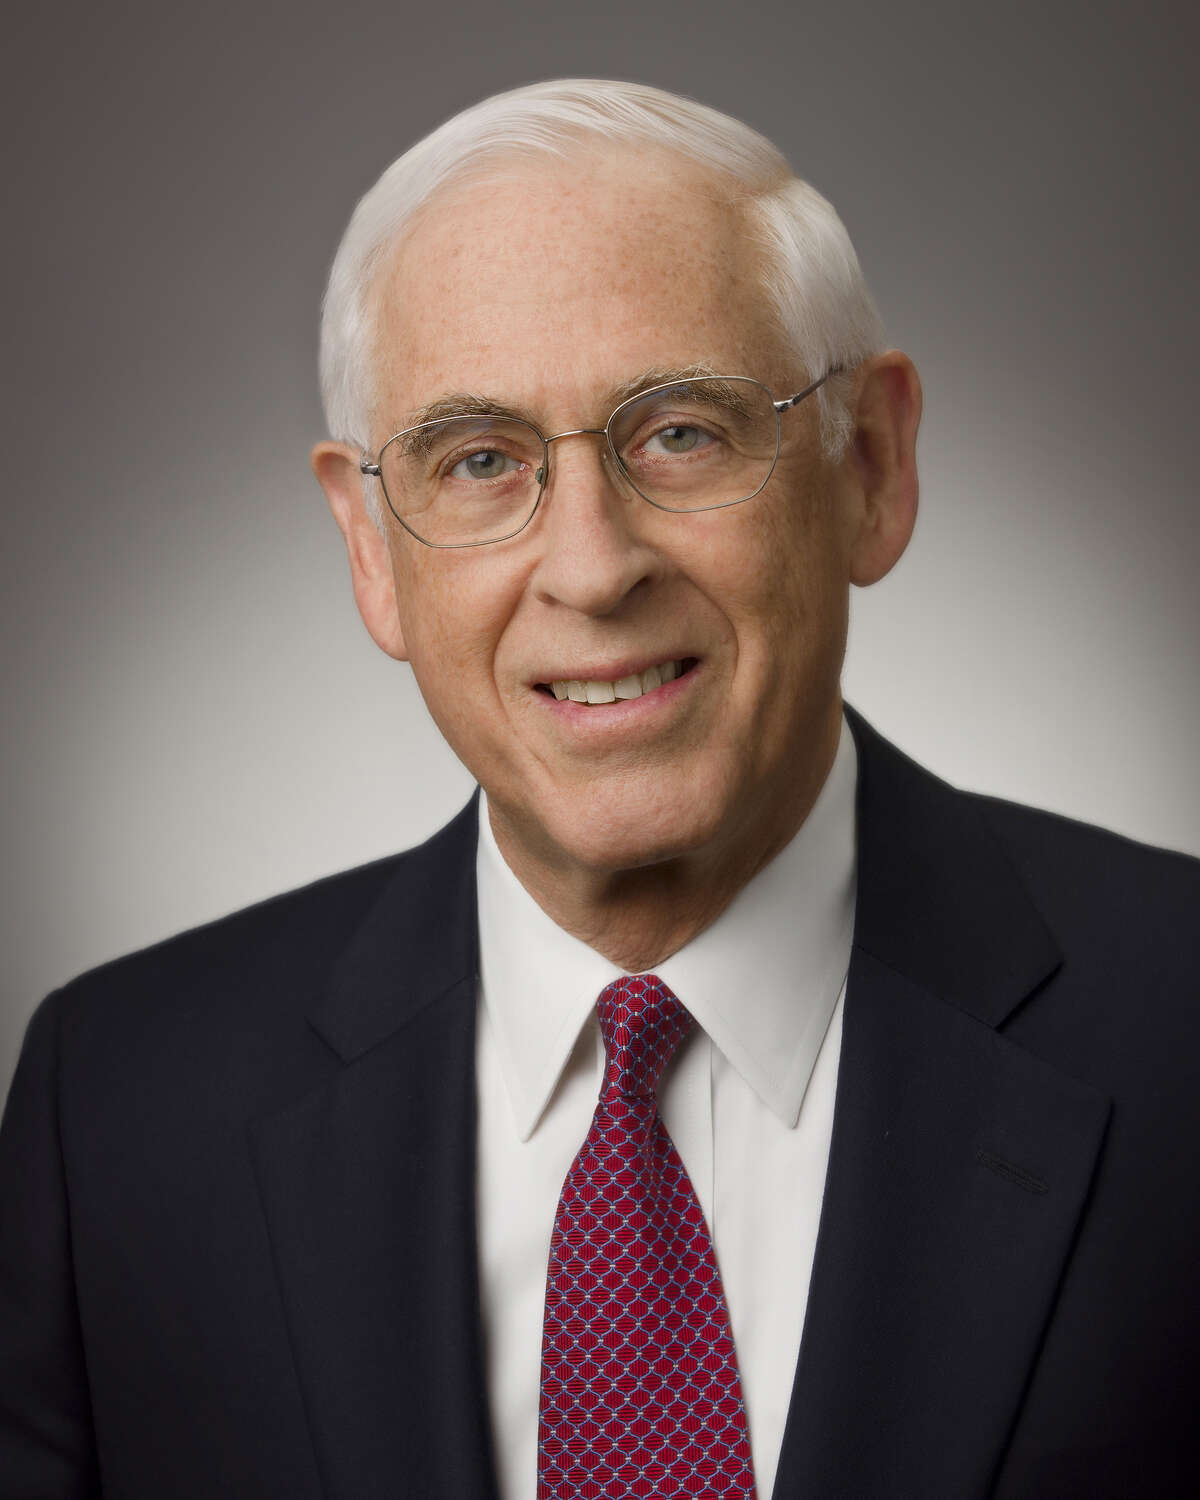 Dr. John Mendelsohn is the past president of the University of Texas MD Anderson Cancer Center. He directs the center's Khalifa Institute for Personalized Cancer Therapy.